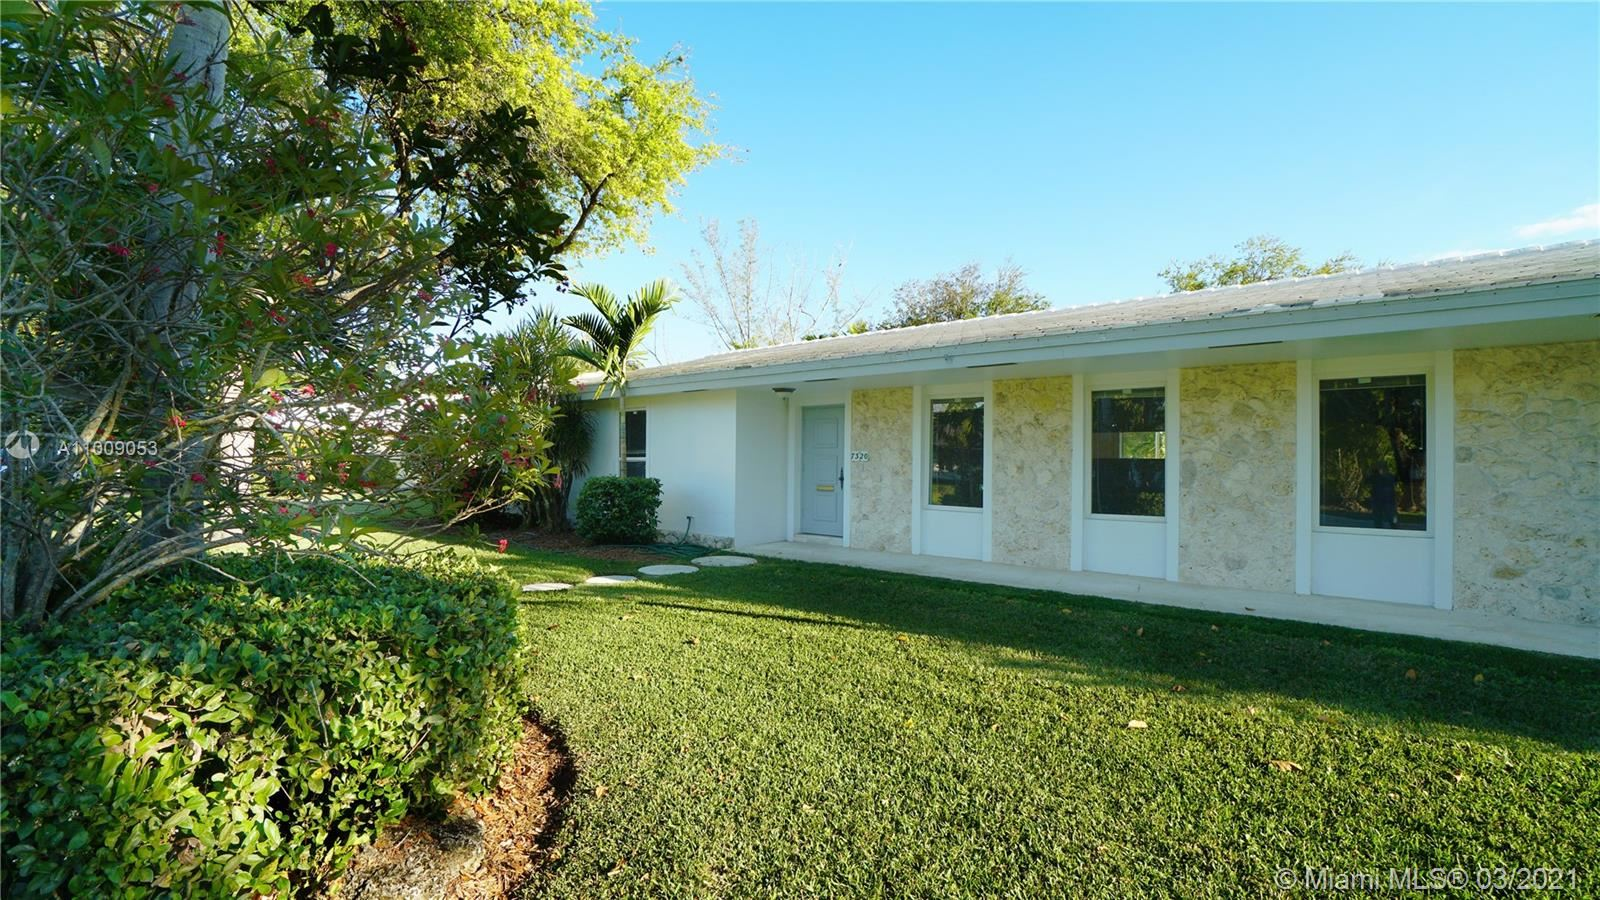 Photo of 7320 SW 109th Ter, Pinecrest, FL 33156 (MLS # A11009053)